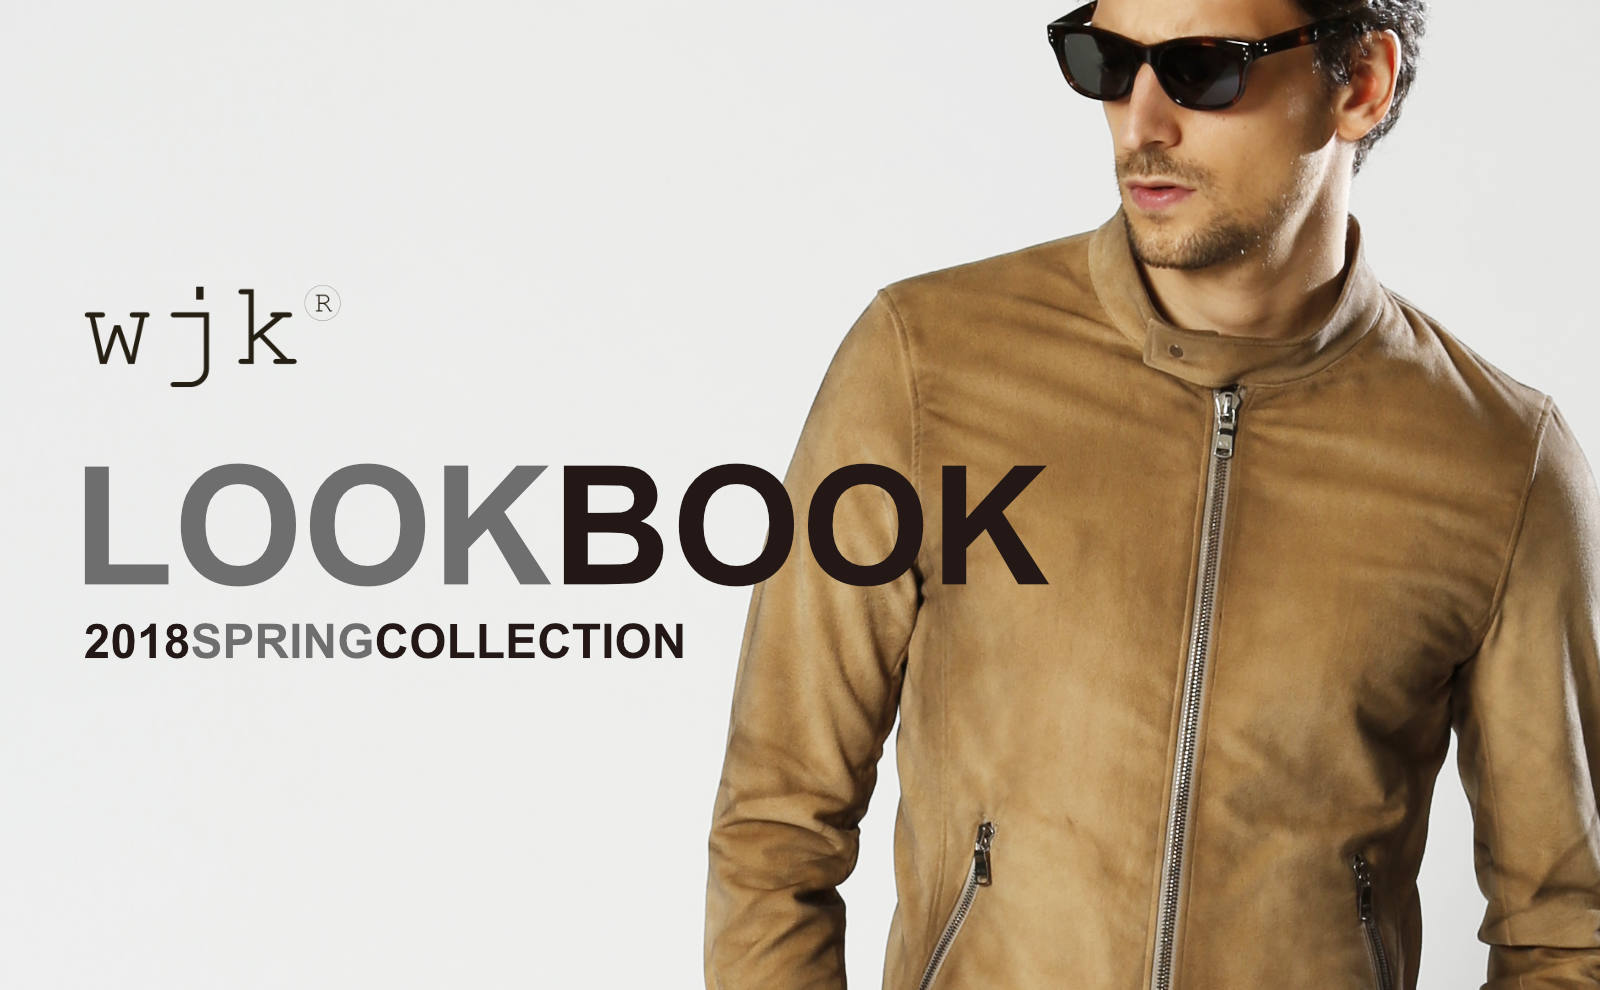 2018 SPRING COLLECTION LOOKBOOK